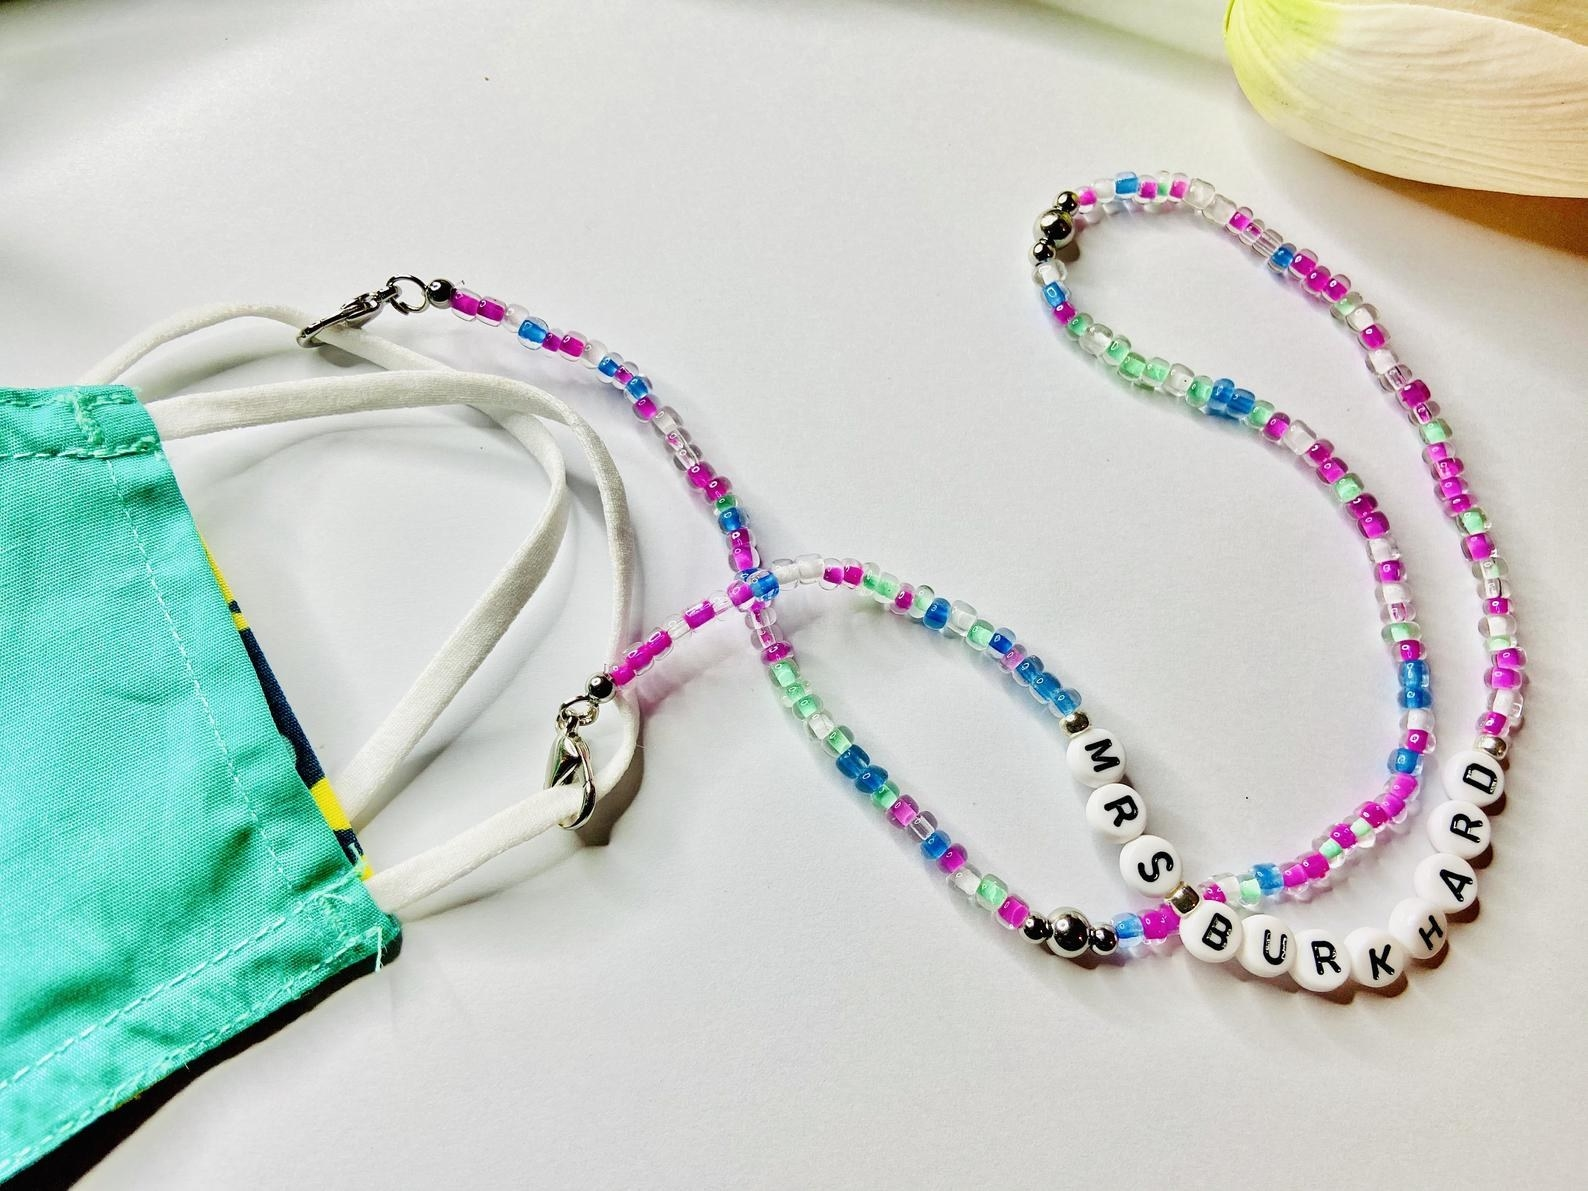 purple, blue, and green beaded mask chain with personalized letter beads